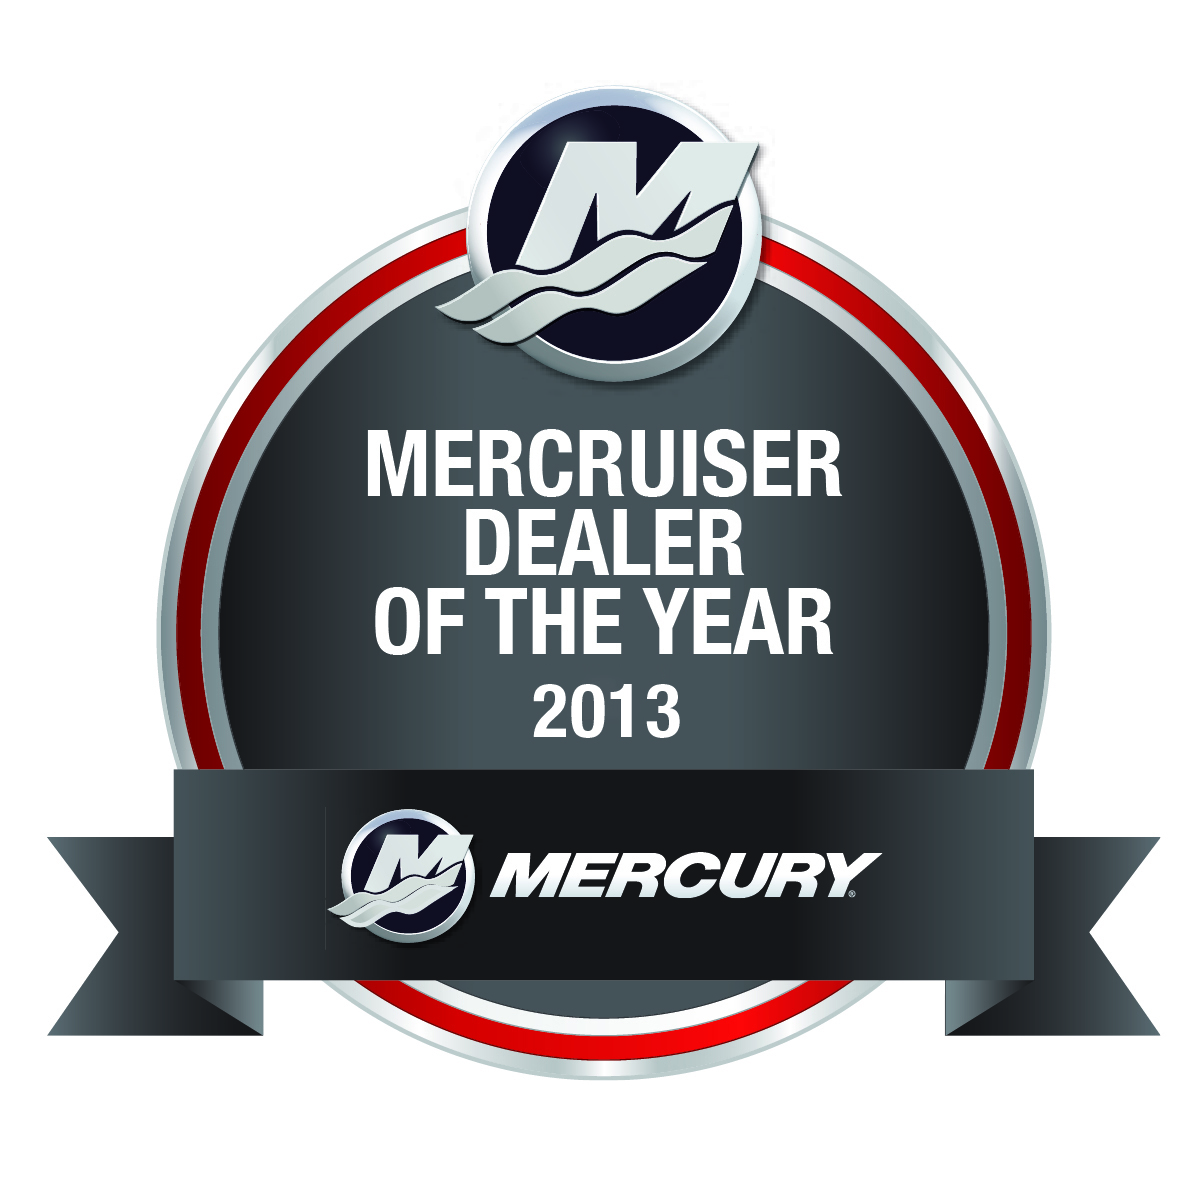 Mercruiser Dealer of the Year Hitech Marine 2013